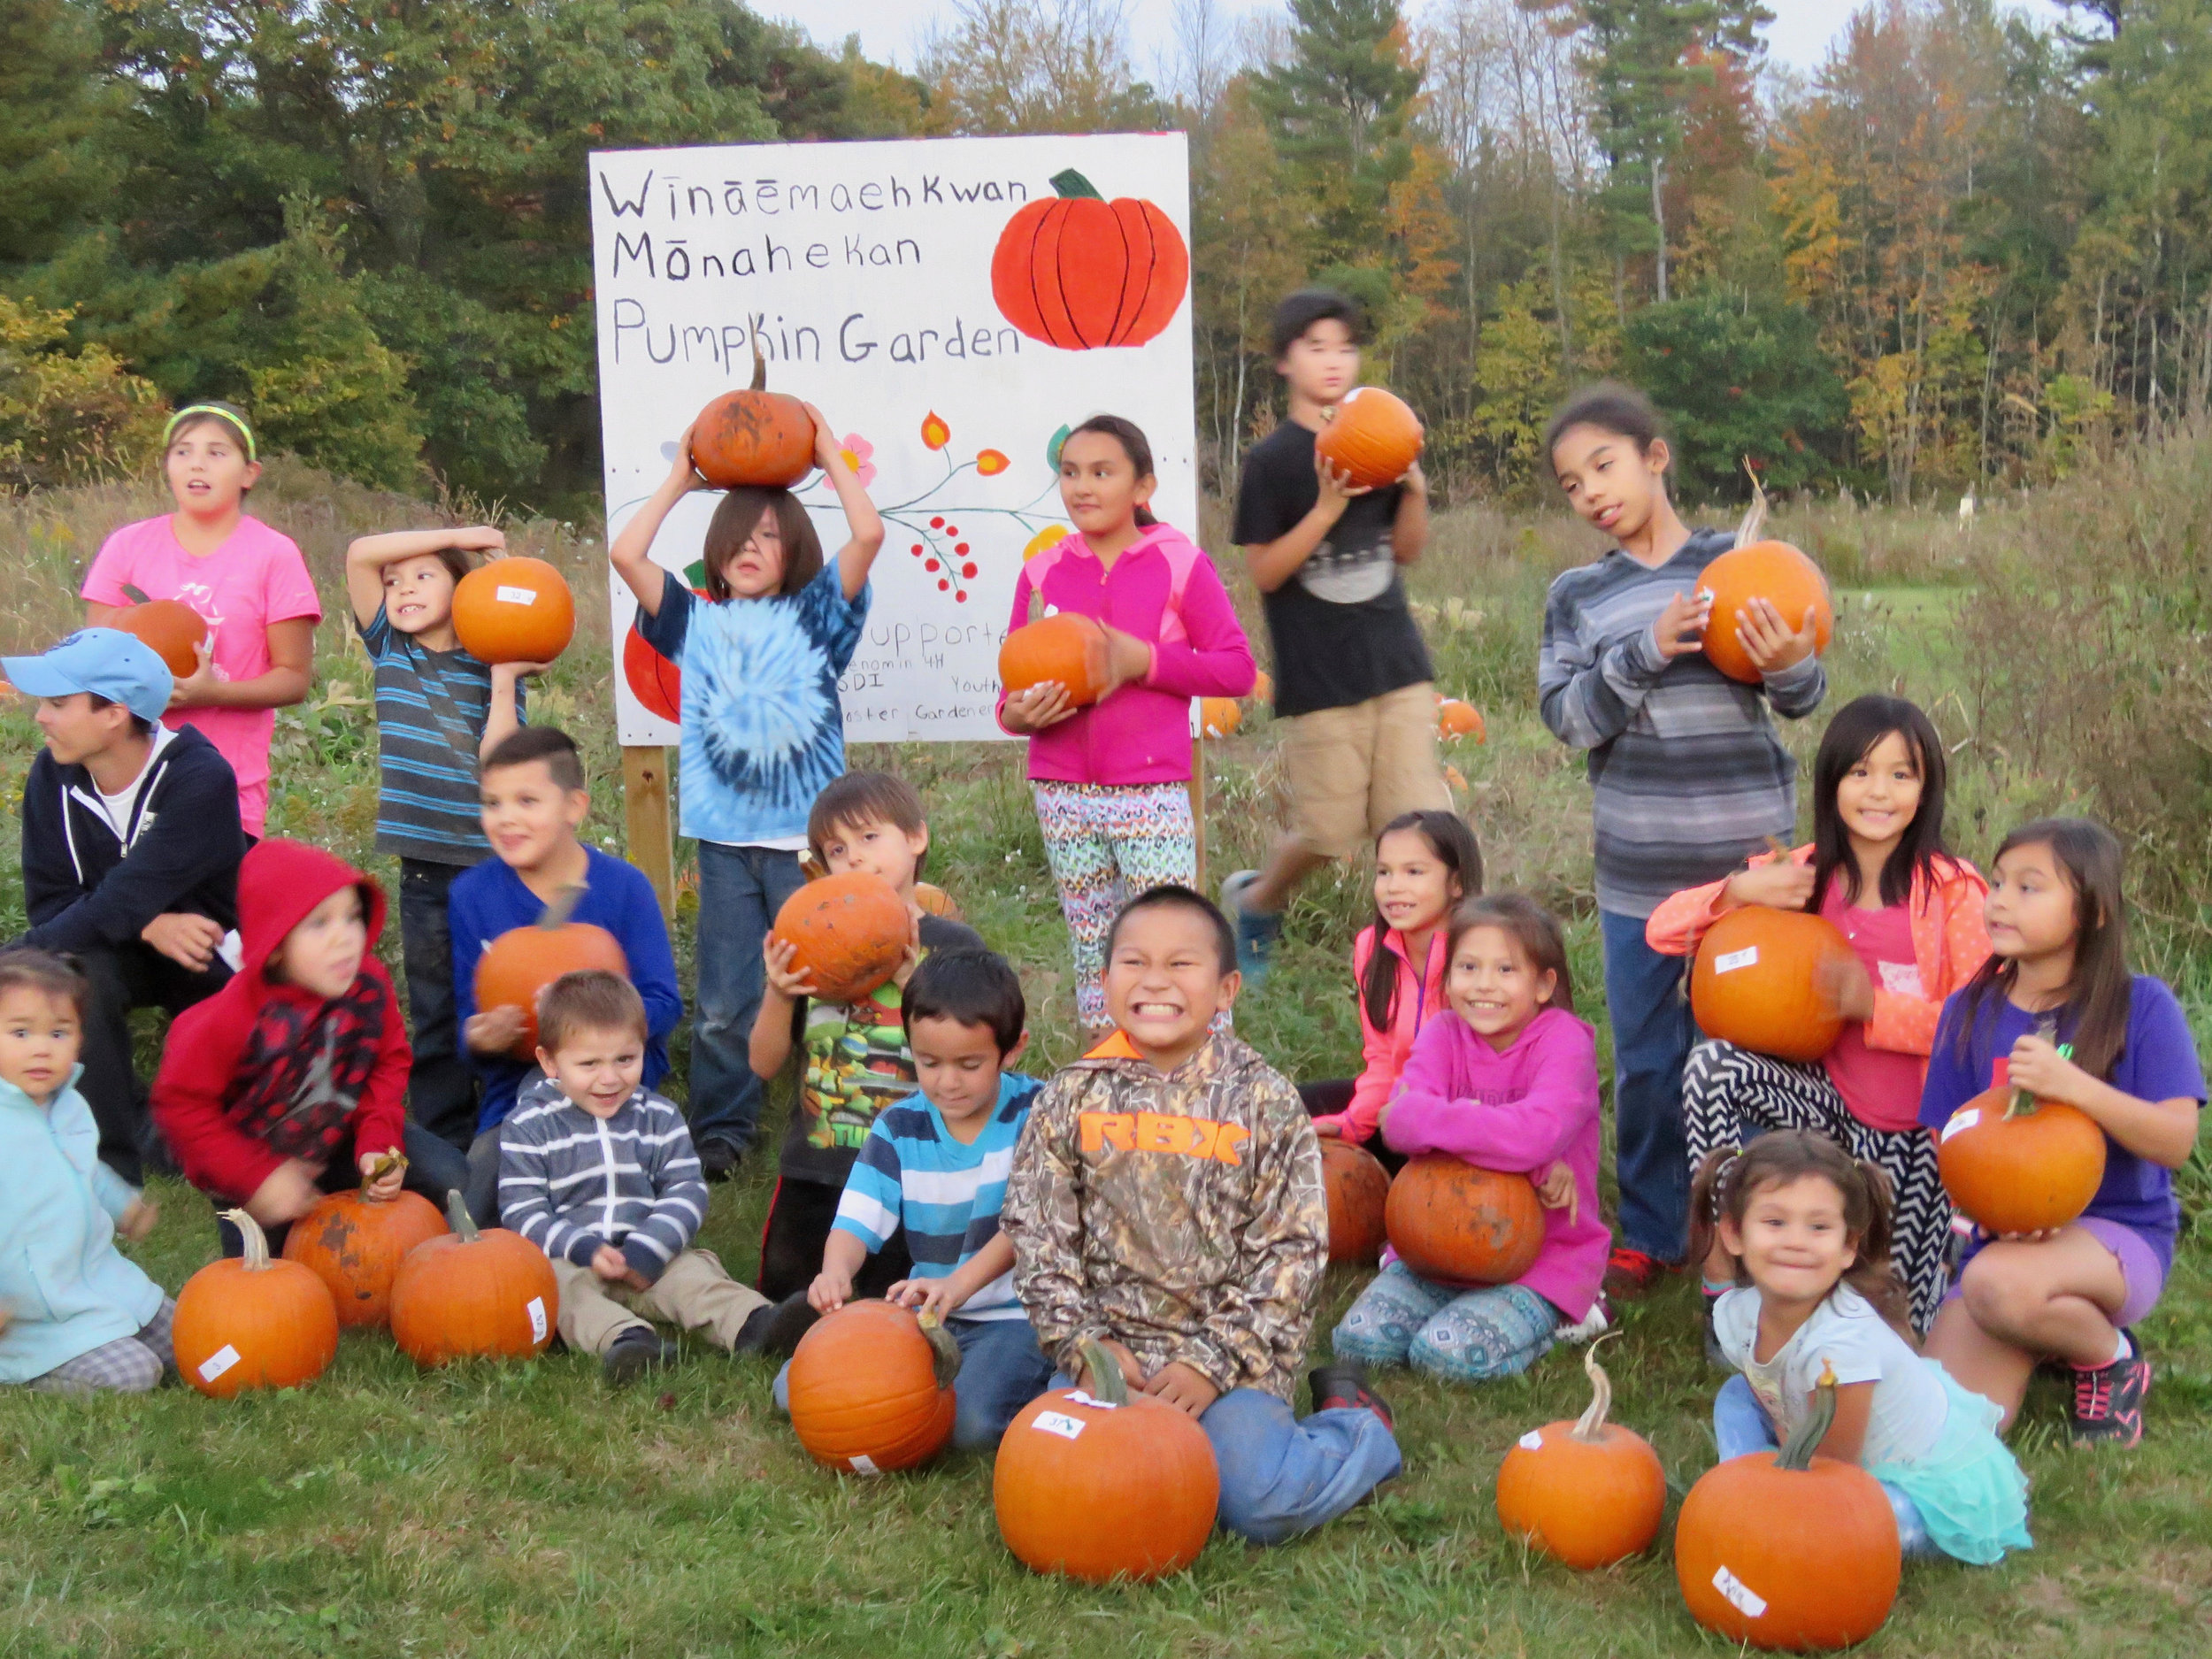 Happy children with their harvested pumpkins on the Menominee reservation.